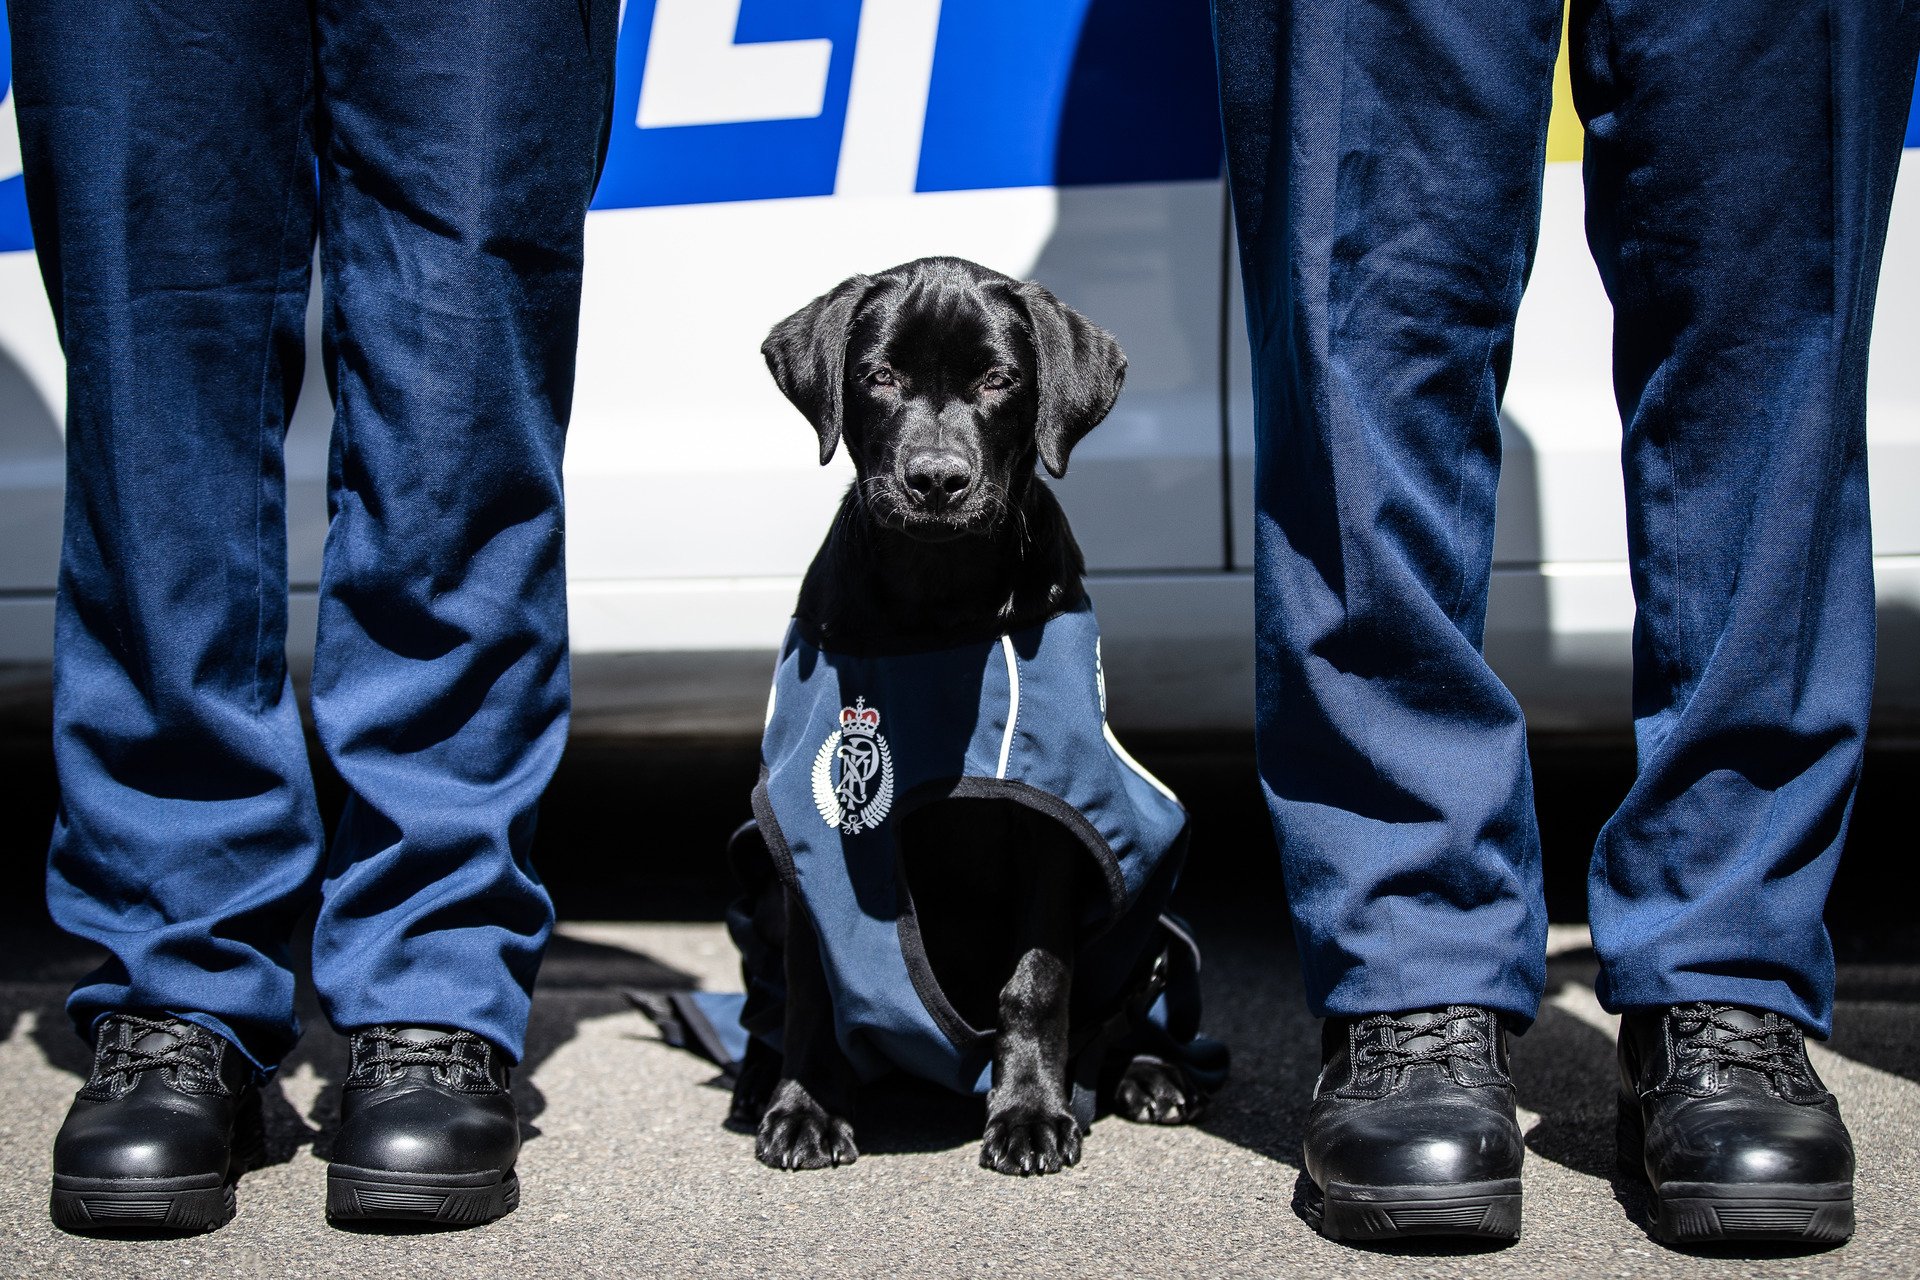 The softer, fluffier side of the NZ Police